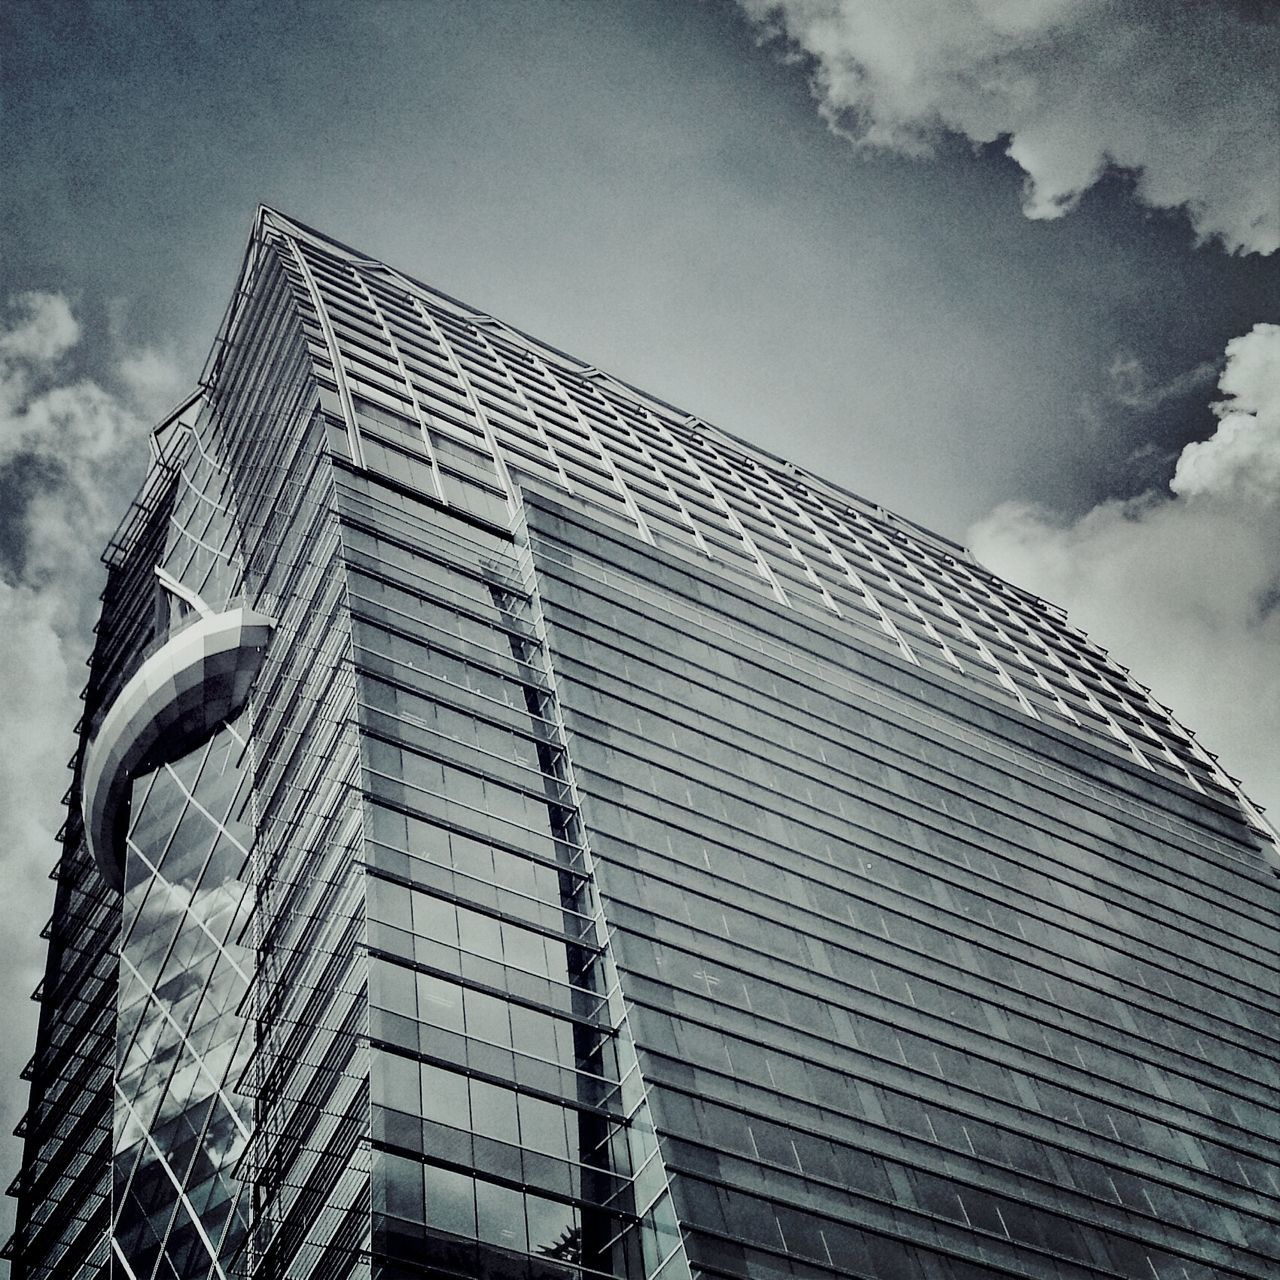 architecture, low angle view, built structure, building exterior, sky, outdoors, cloud - sky, modern, no people, day, skyscraper, city